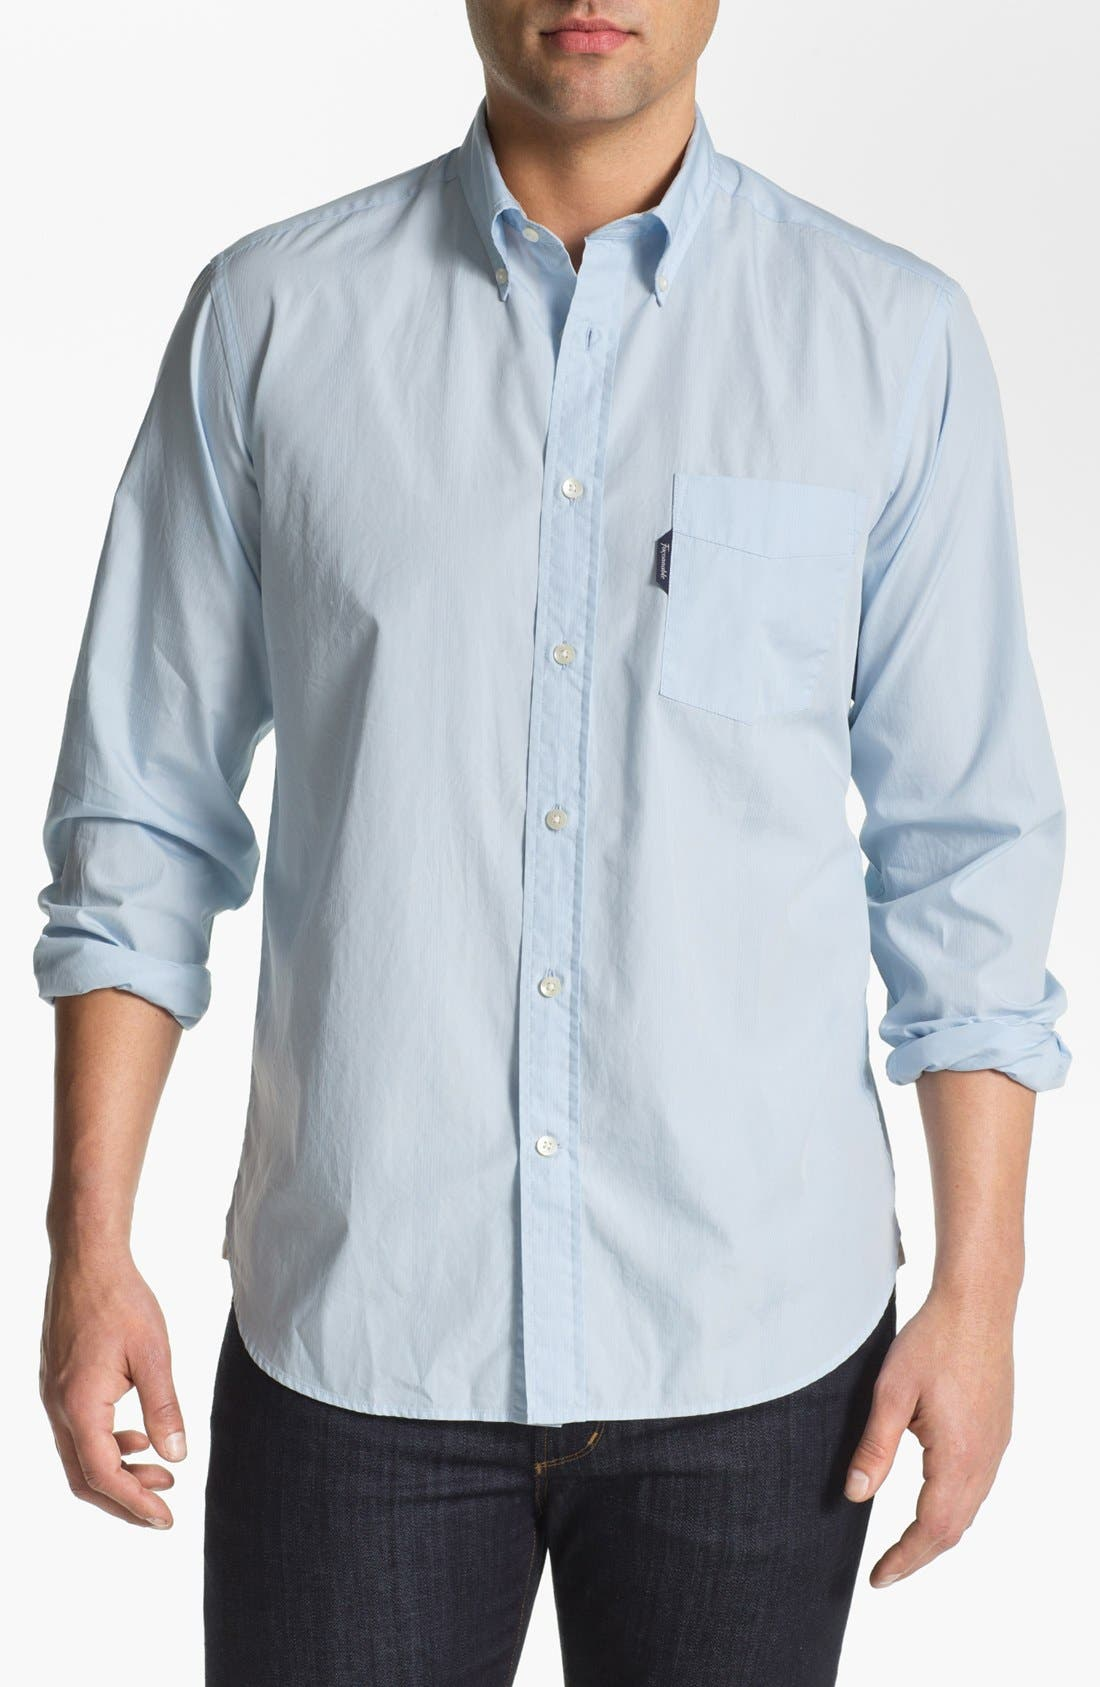 Main Image - Façonnable Club Fit Cambric Sport Shirt